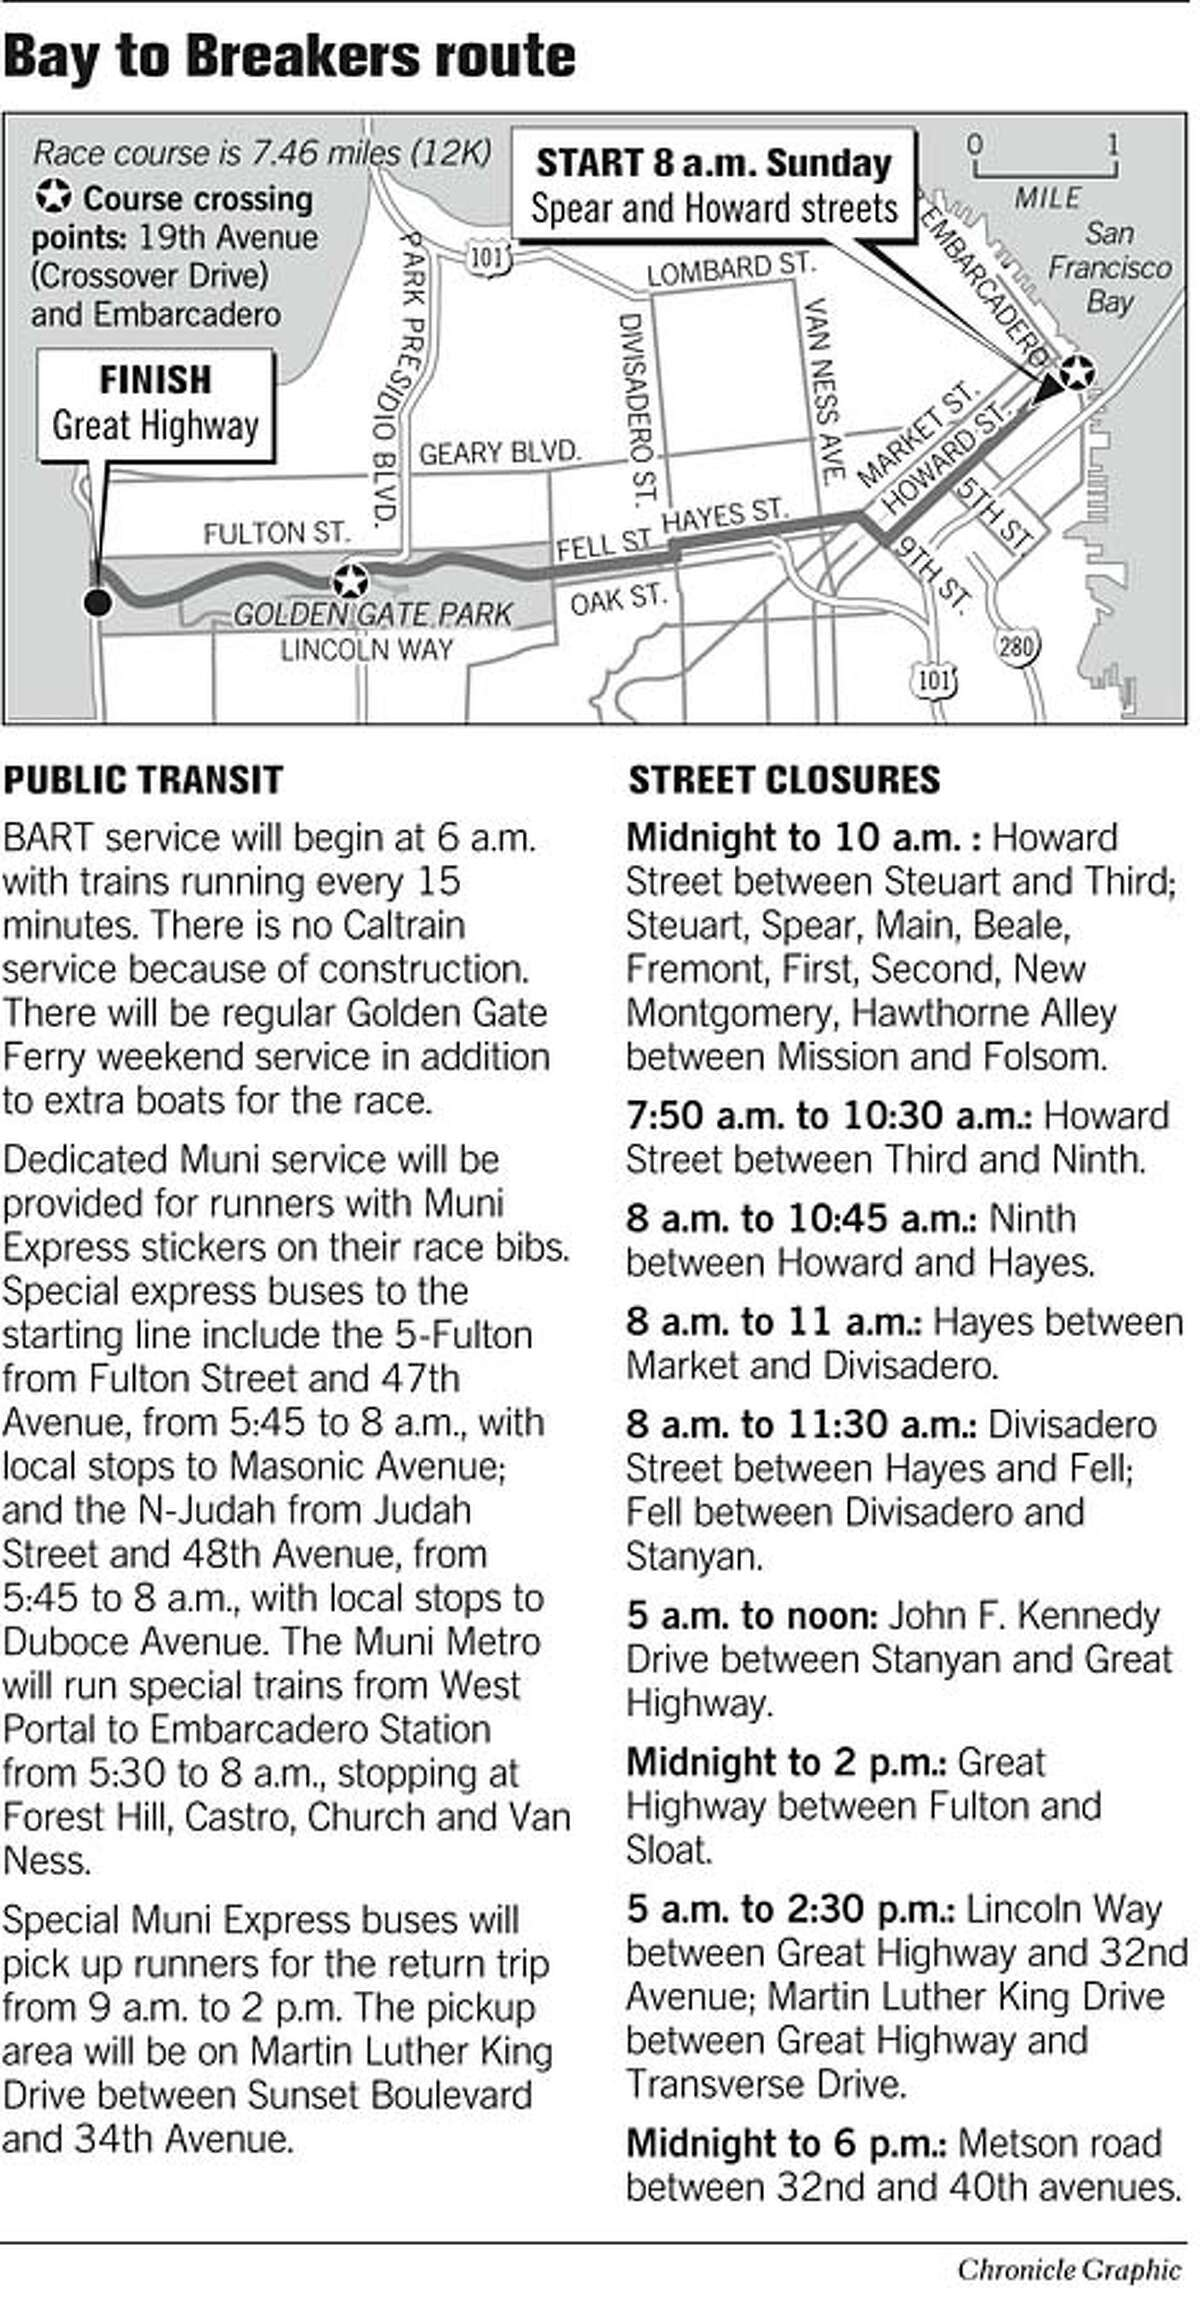 Bay to Breakers Route. Chronicle Graphic